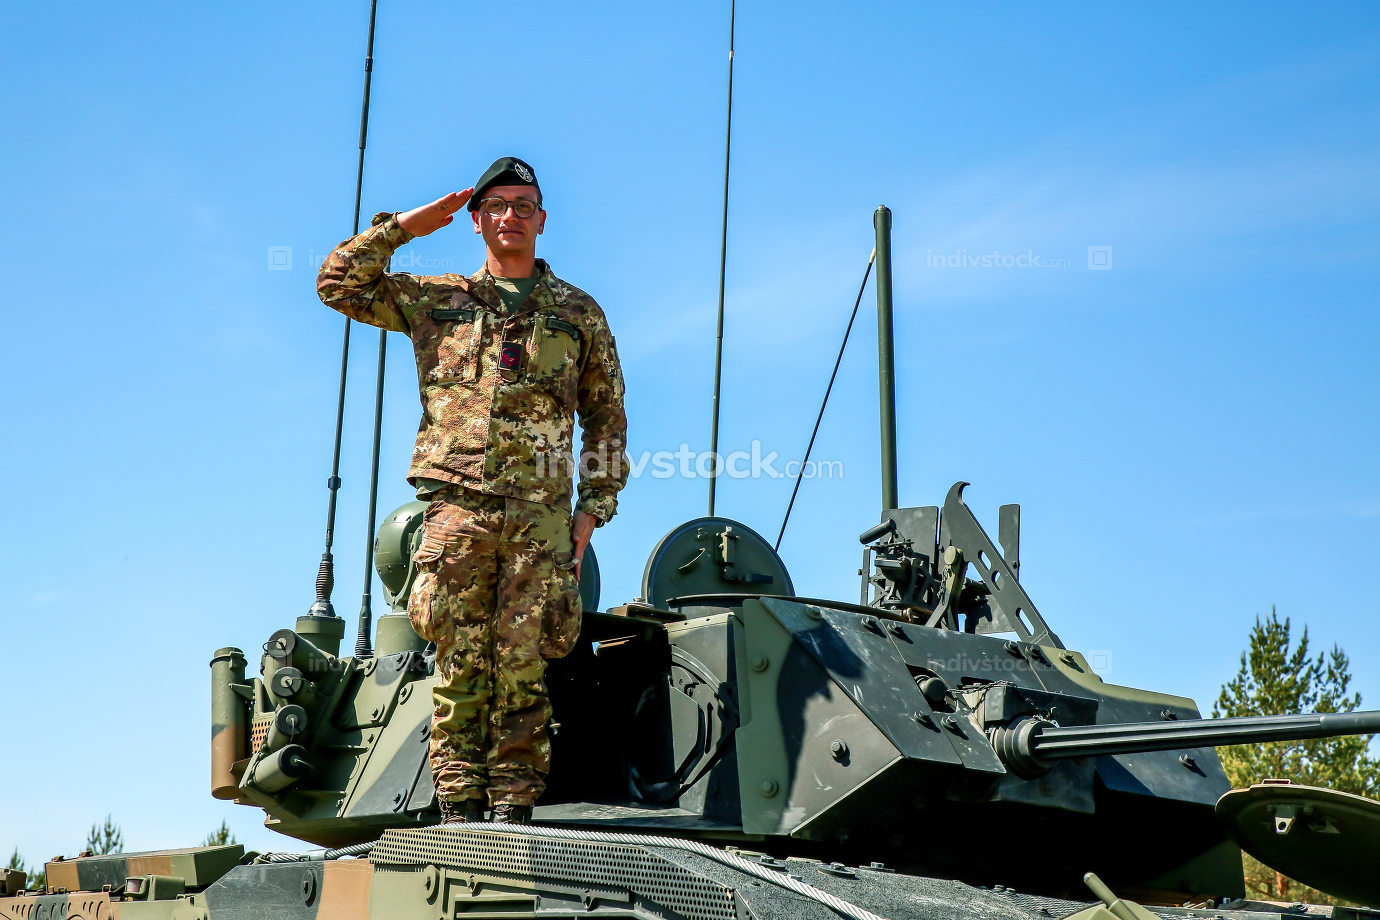 Soldier on tank in military training Saber Strike in Latvia.